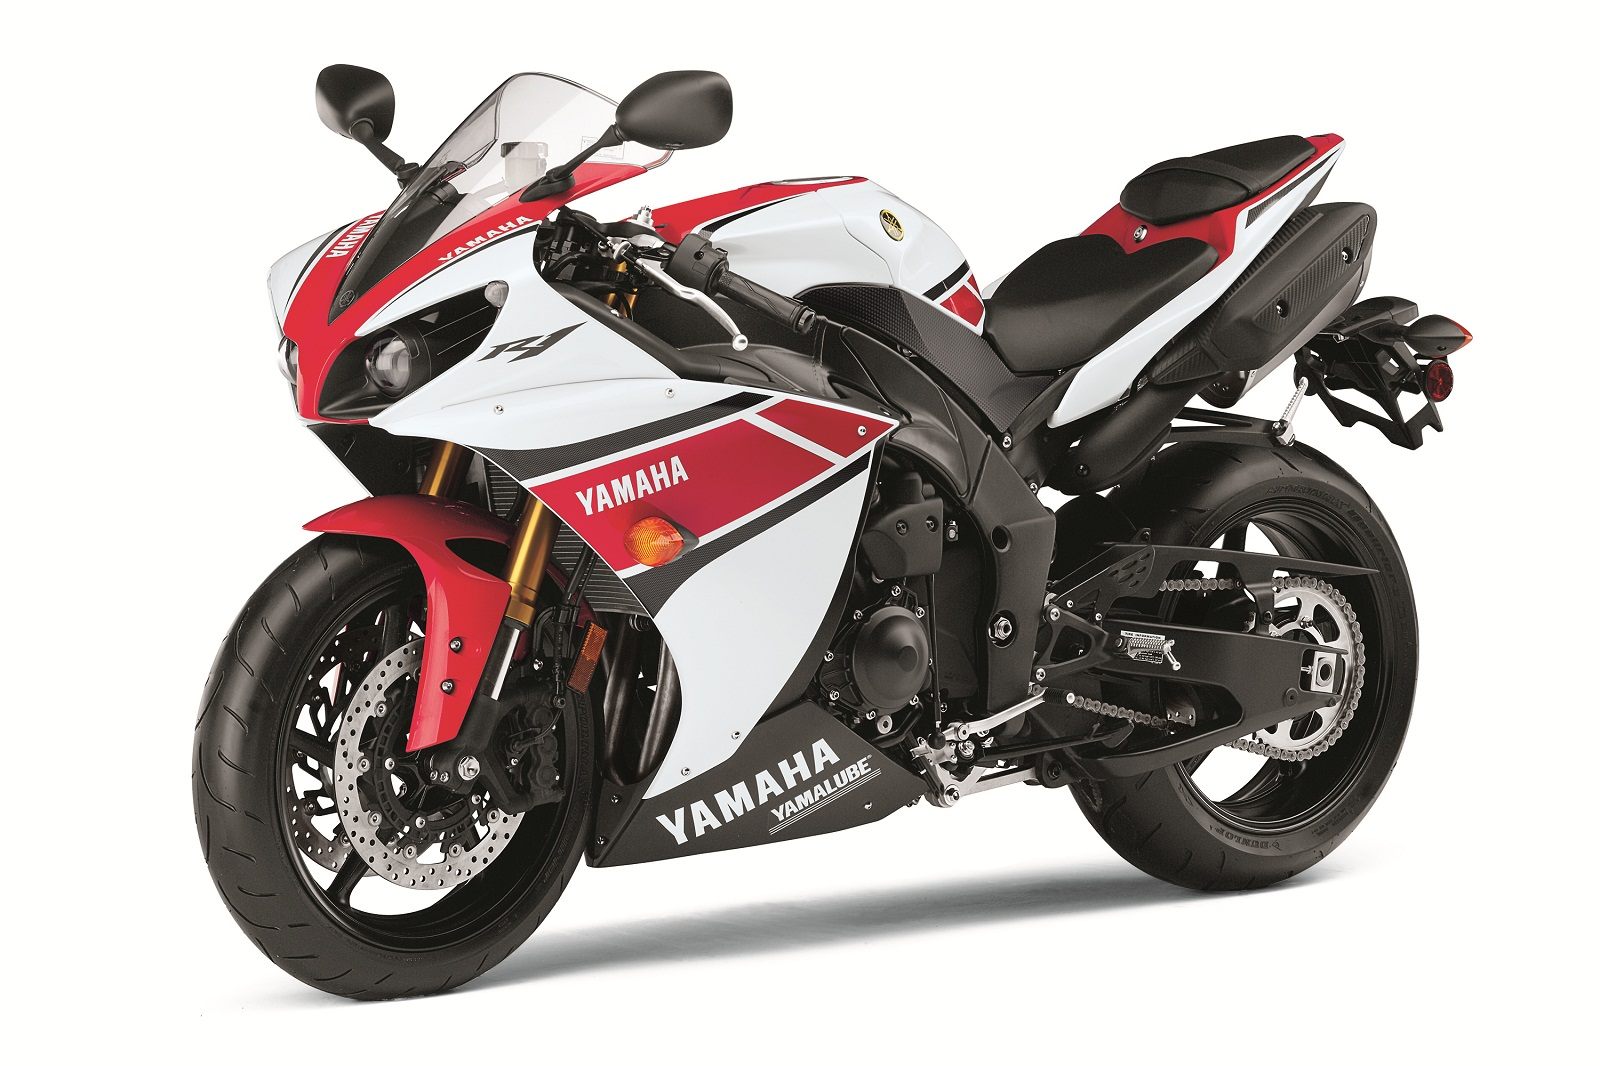 2012 yamaha yzf r1 review top speed for Yamaha r1 top speed